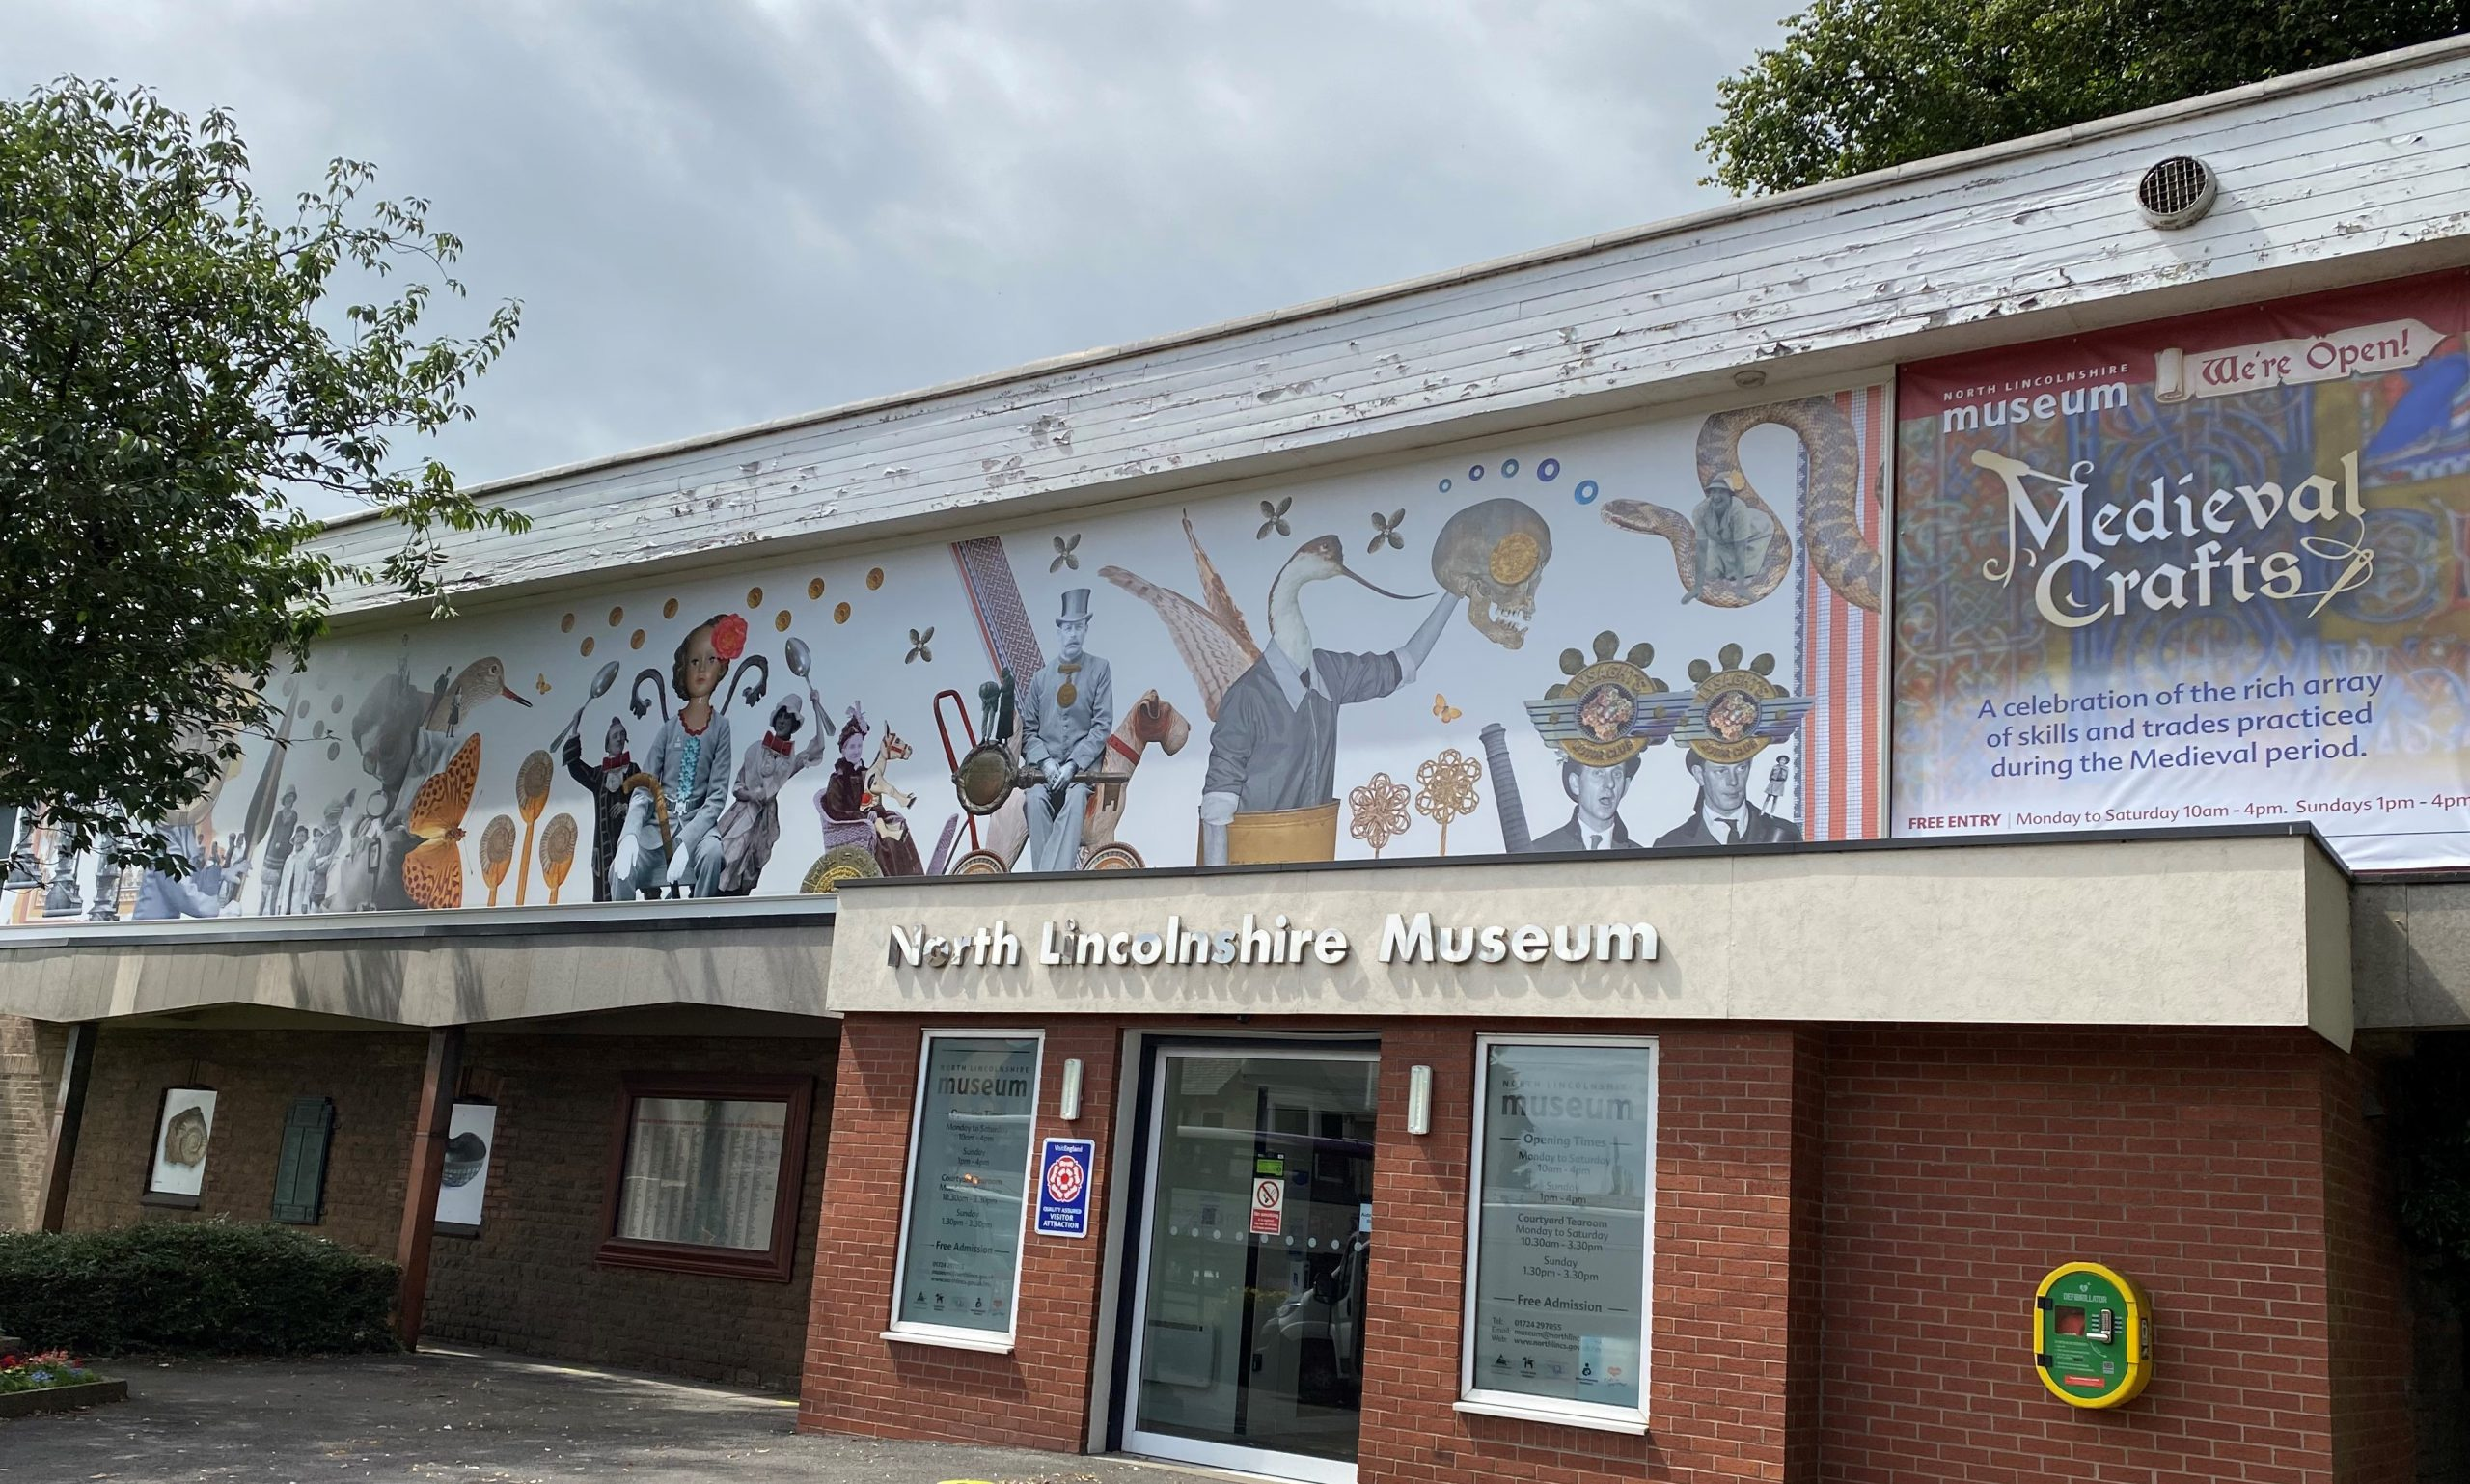 Stunning new graphic for North Lincolnshire Museum